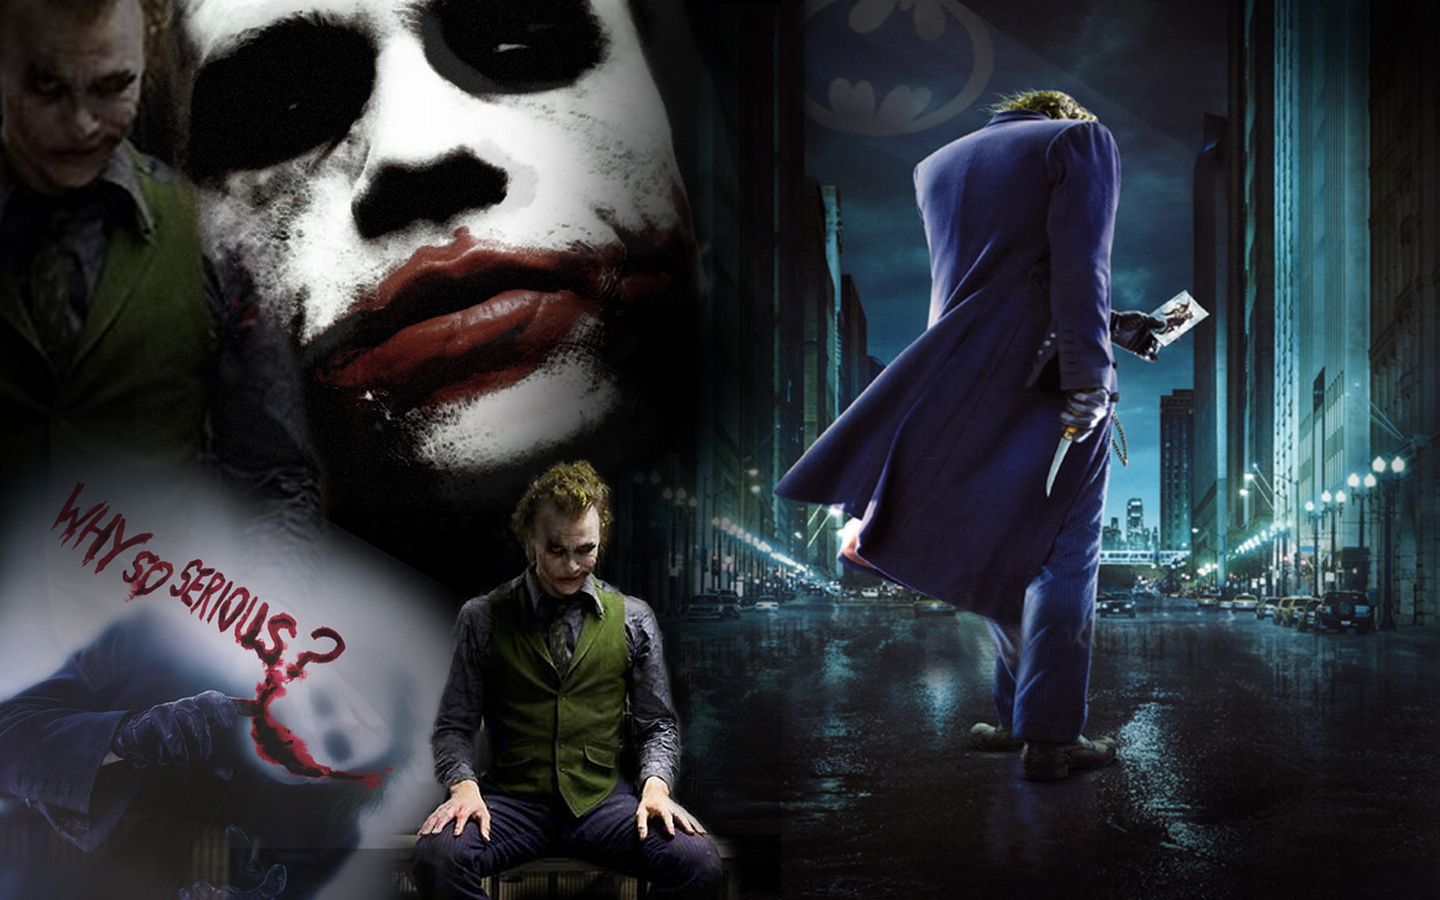 The dark knight wallpaper widescreen |Funny & Amazing Images